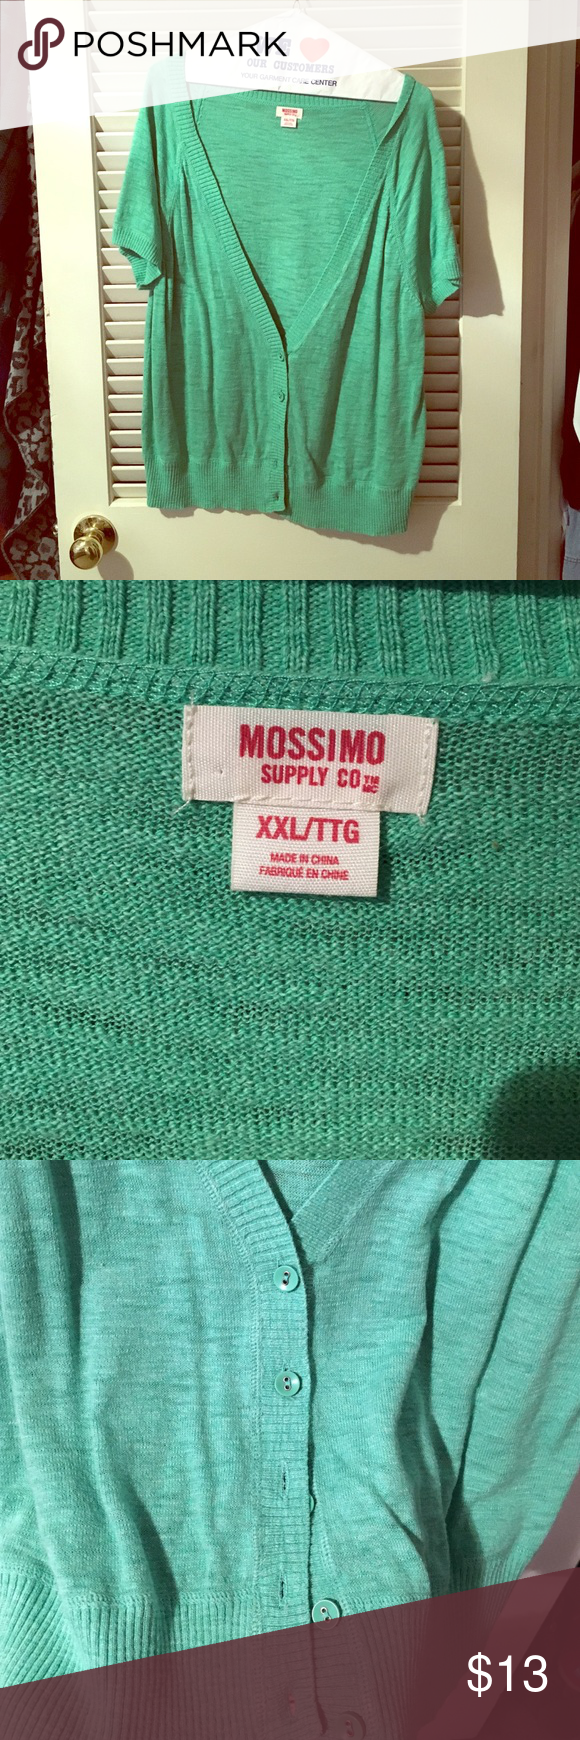 Mossimo Green Short Sleeve Cardigan | Shorts, D and Sweater cardigan